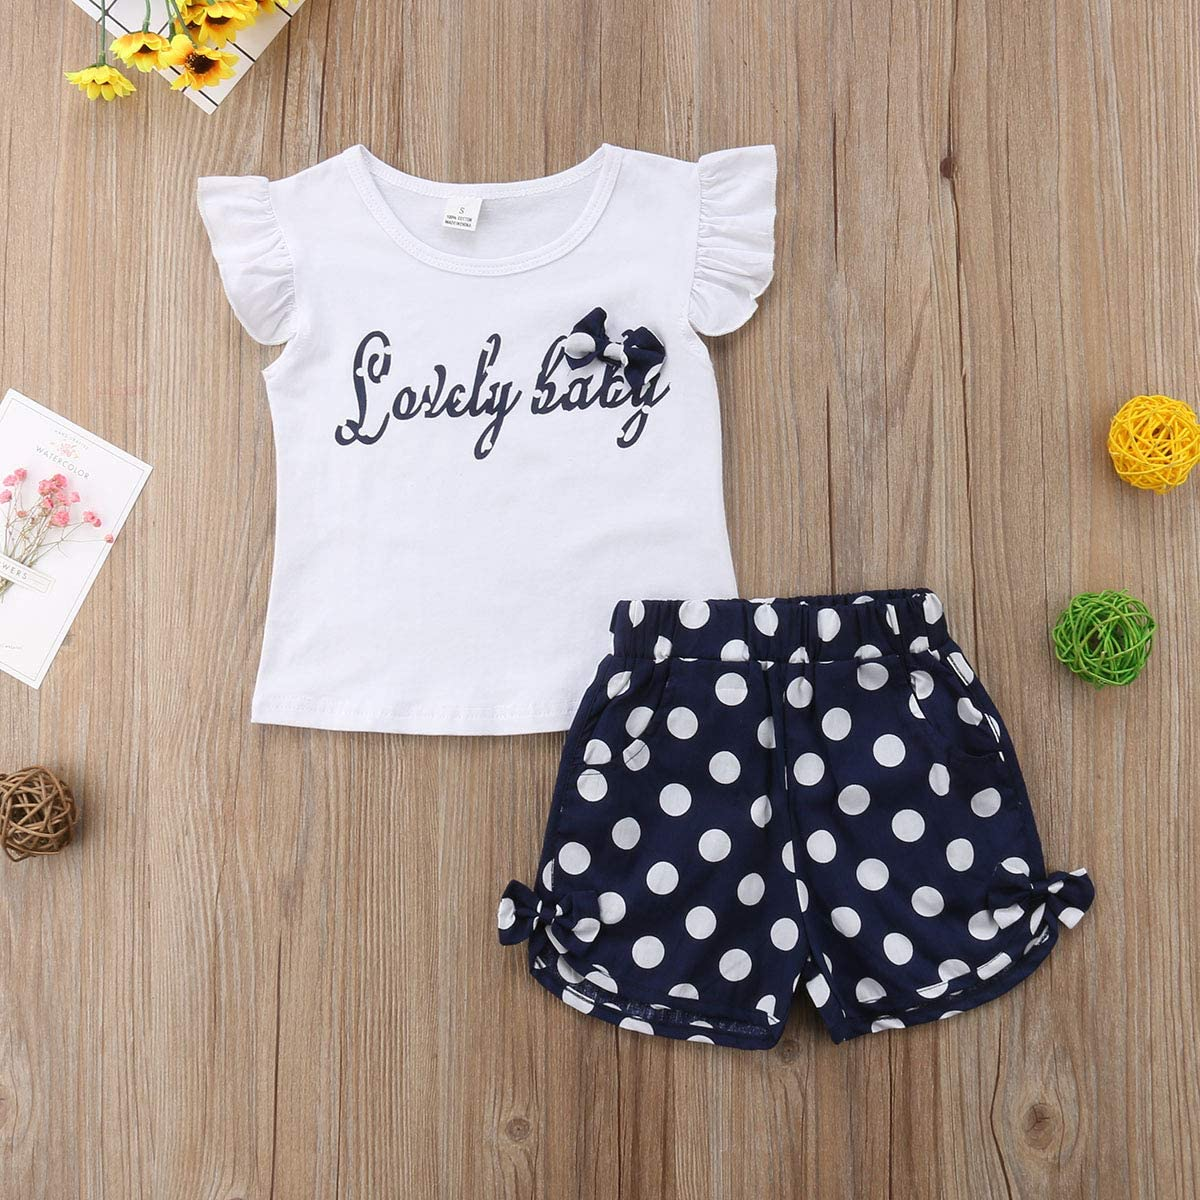 Toddler Infant Baby Girls Fly Sleeve T-Shirt Top+Polka Dot Shorts Pants Clothes Outfits Set